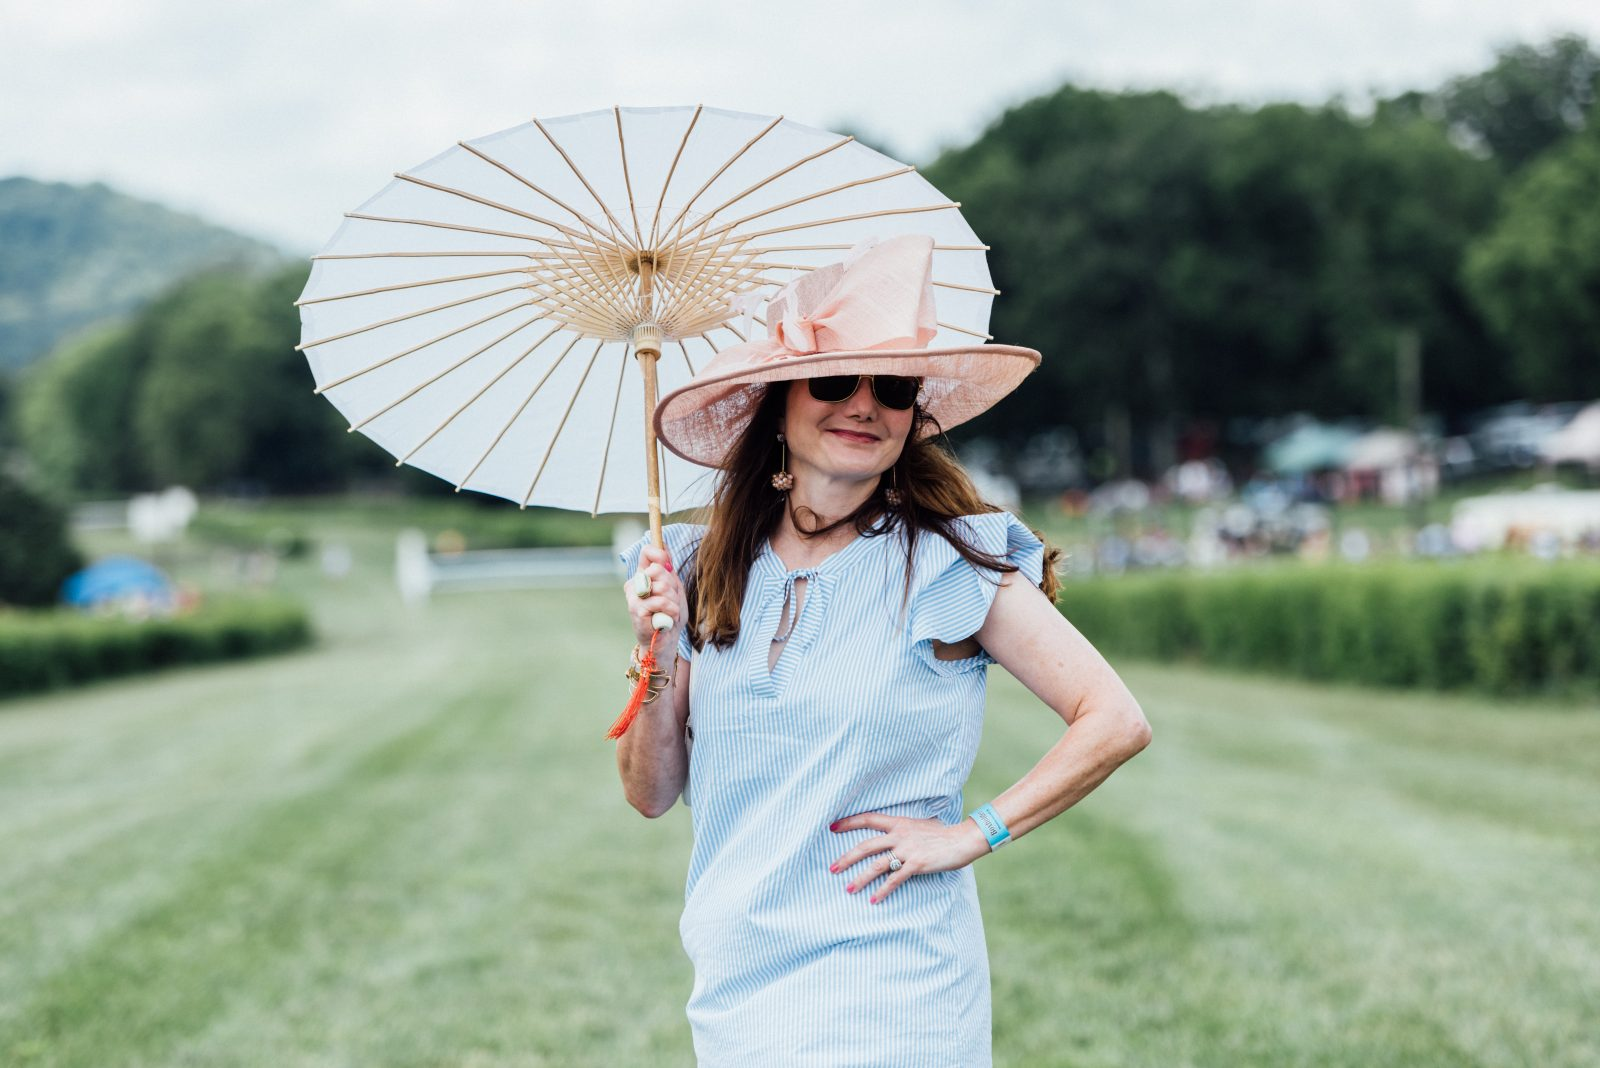 Adrian E Morales at the TN Steeplechase fashion show with The Nashville Edit.